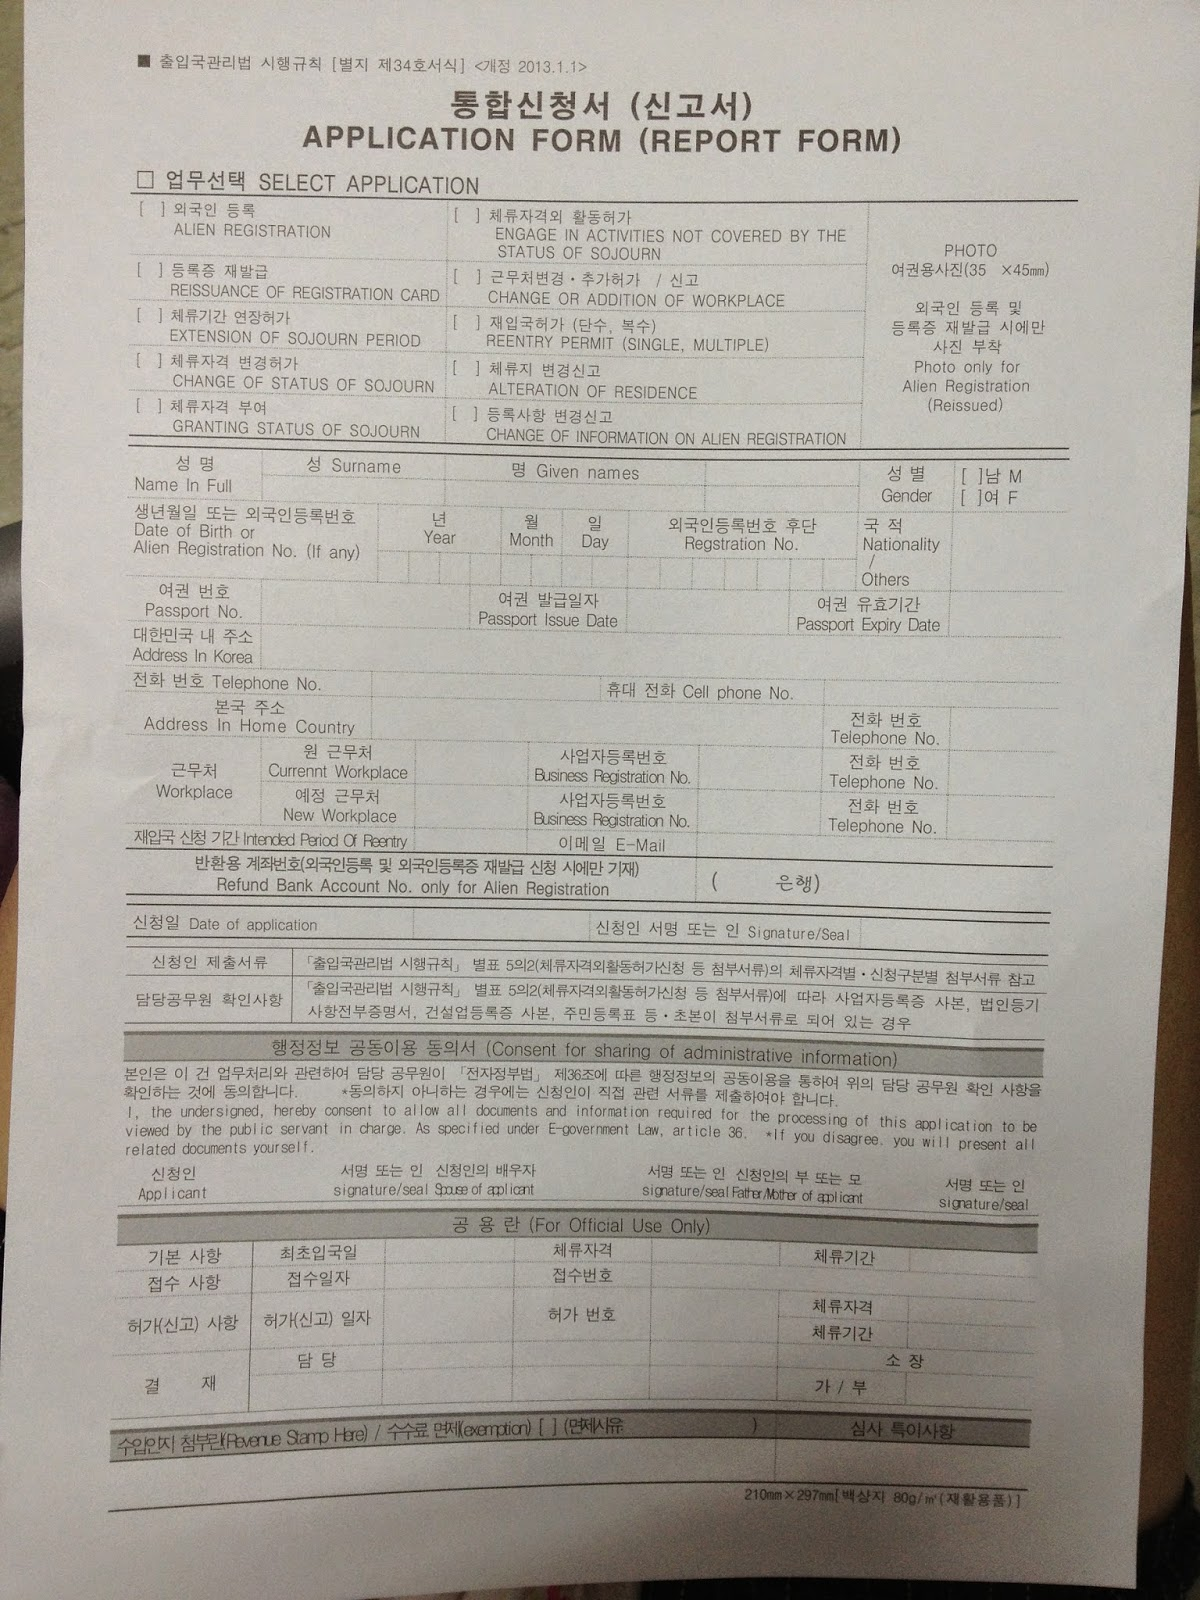 alien registration card korea form applying immigration seoul office fill advance either